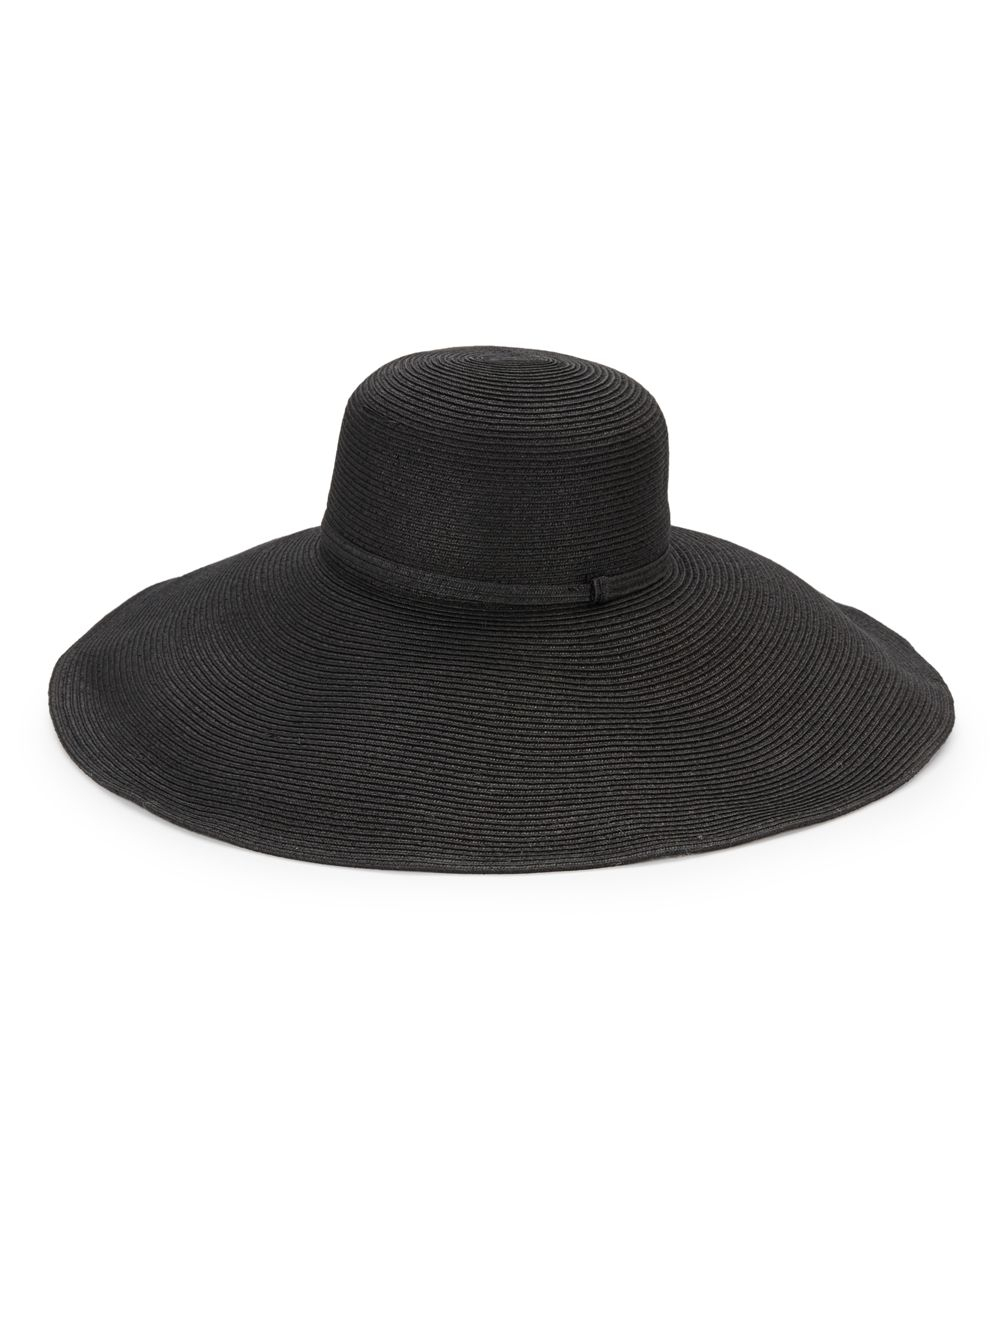 6e721a5d26c Lyst - Gottex Belladonna Straw Hat in Black